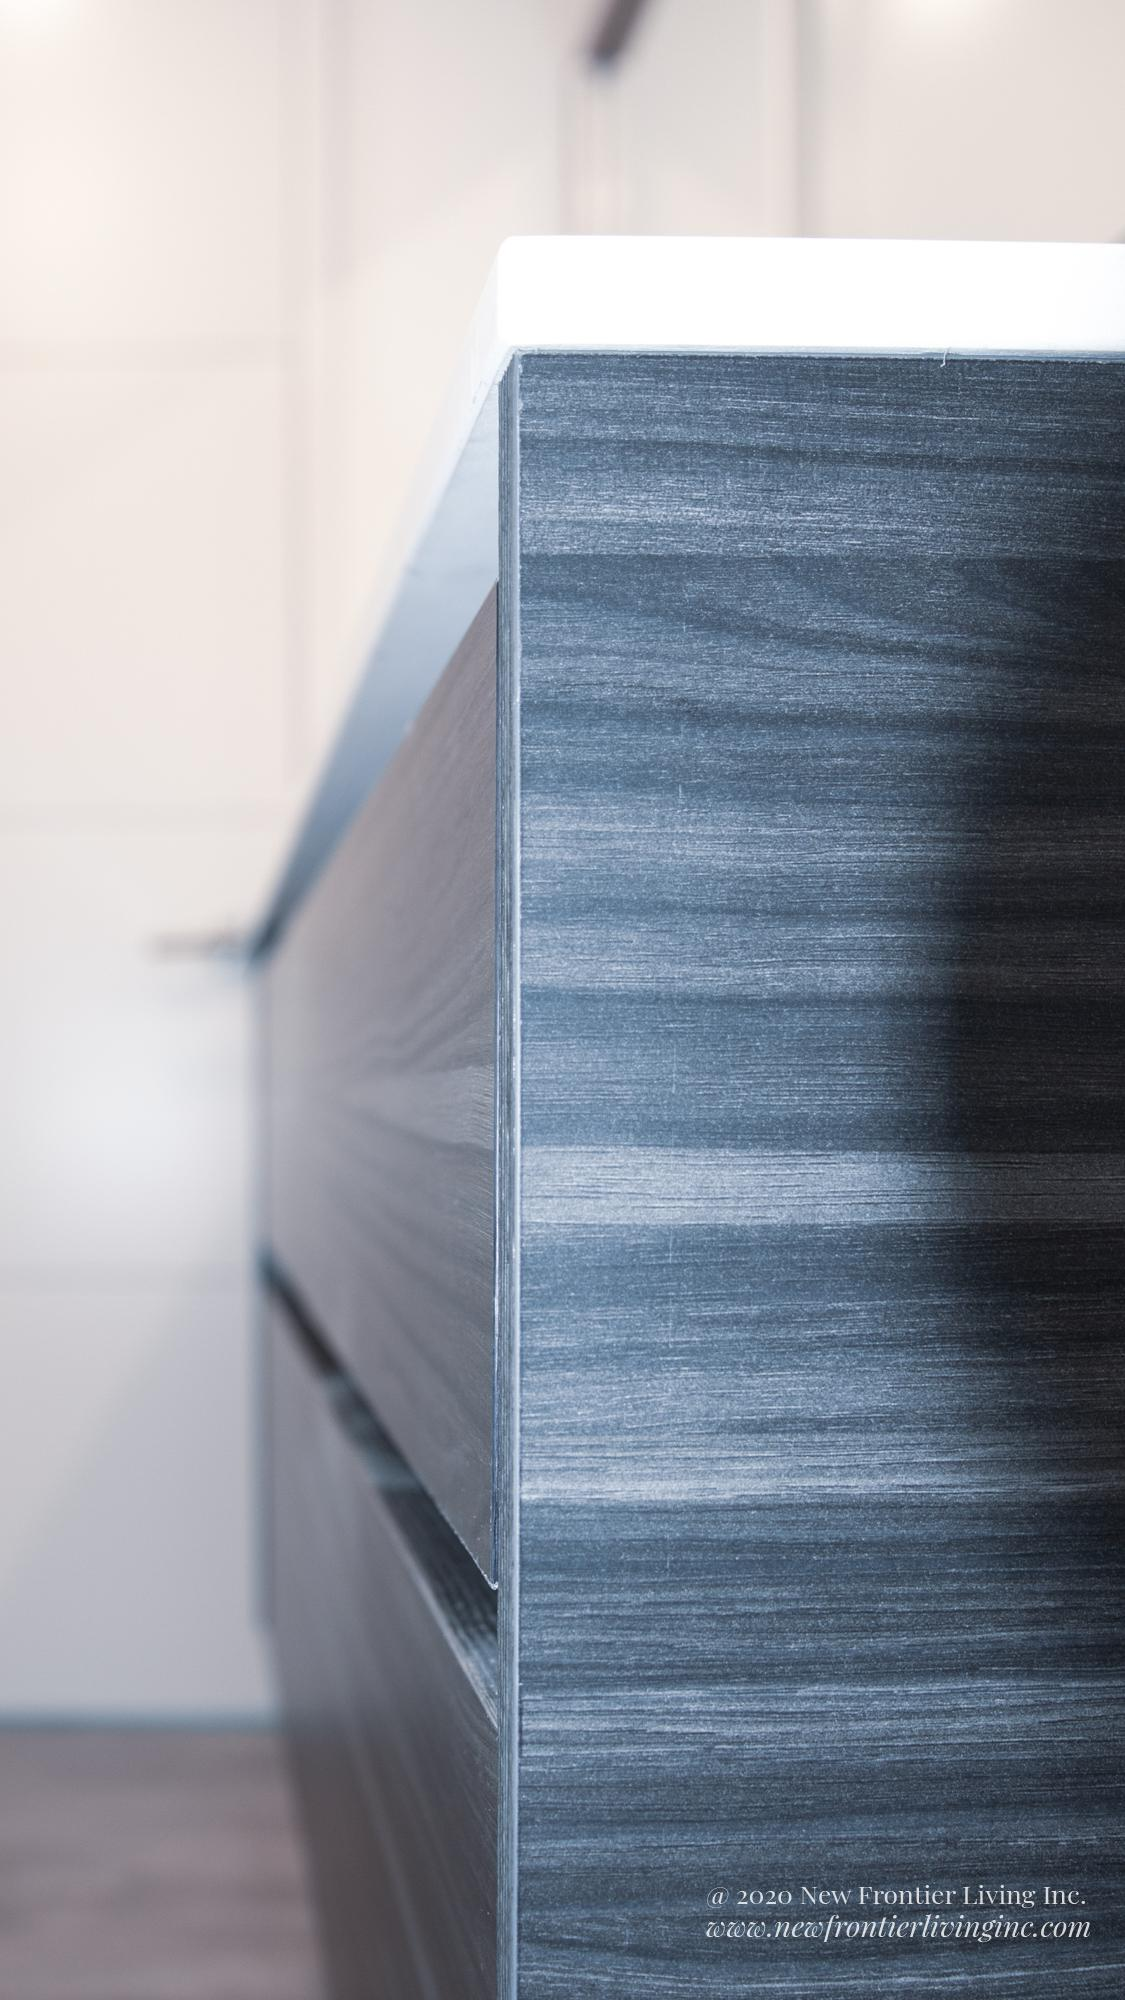 Close-up of dark gray textured paneling on cabinetry